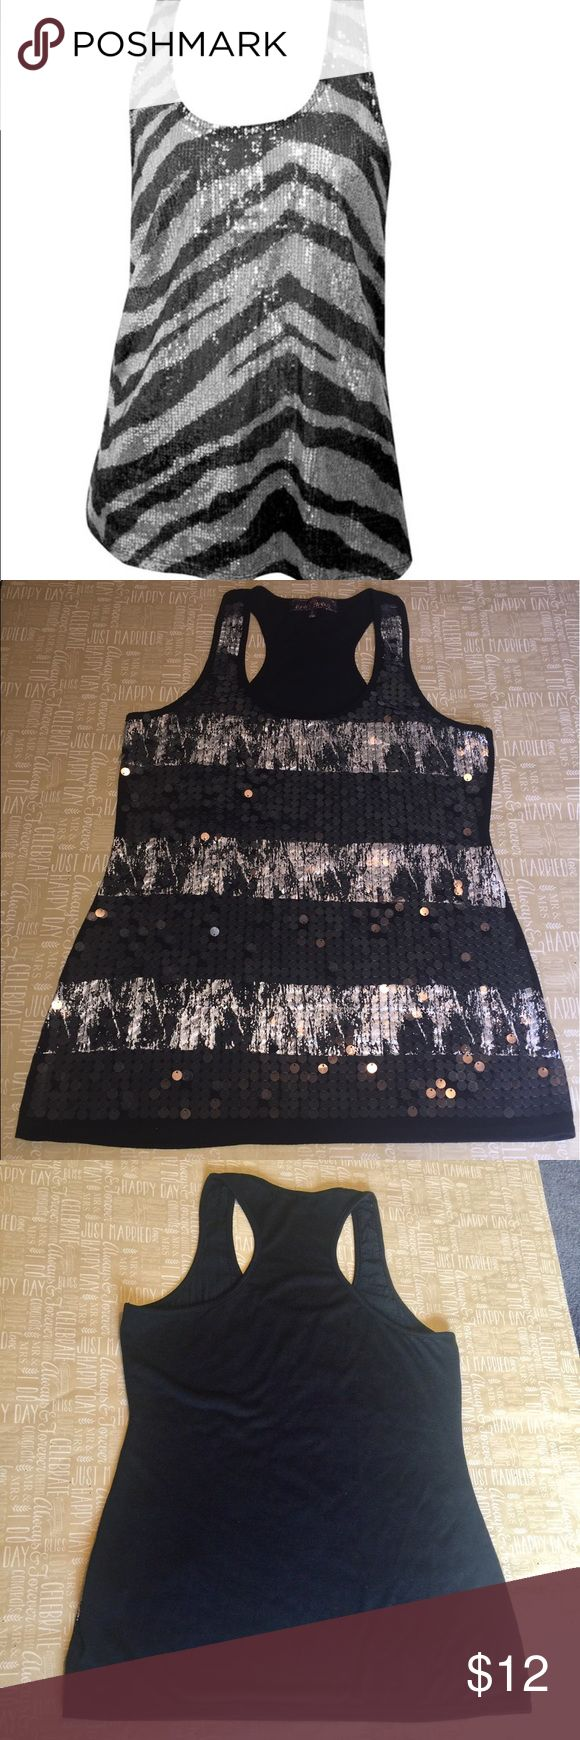 Almost Famous Sequin Razorback Tank Almost Famous Black and Grey Sequin Razorback Tank. Sequins on front. L size. New without tags. Almost Famous Tops Tank Tops